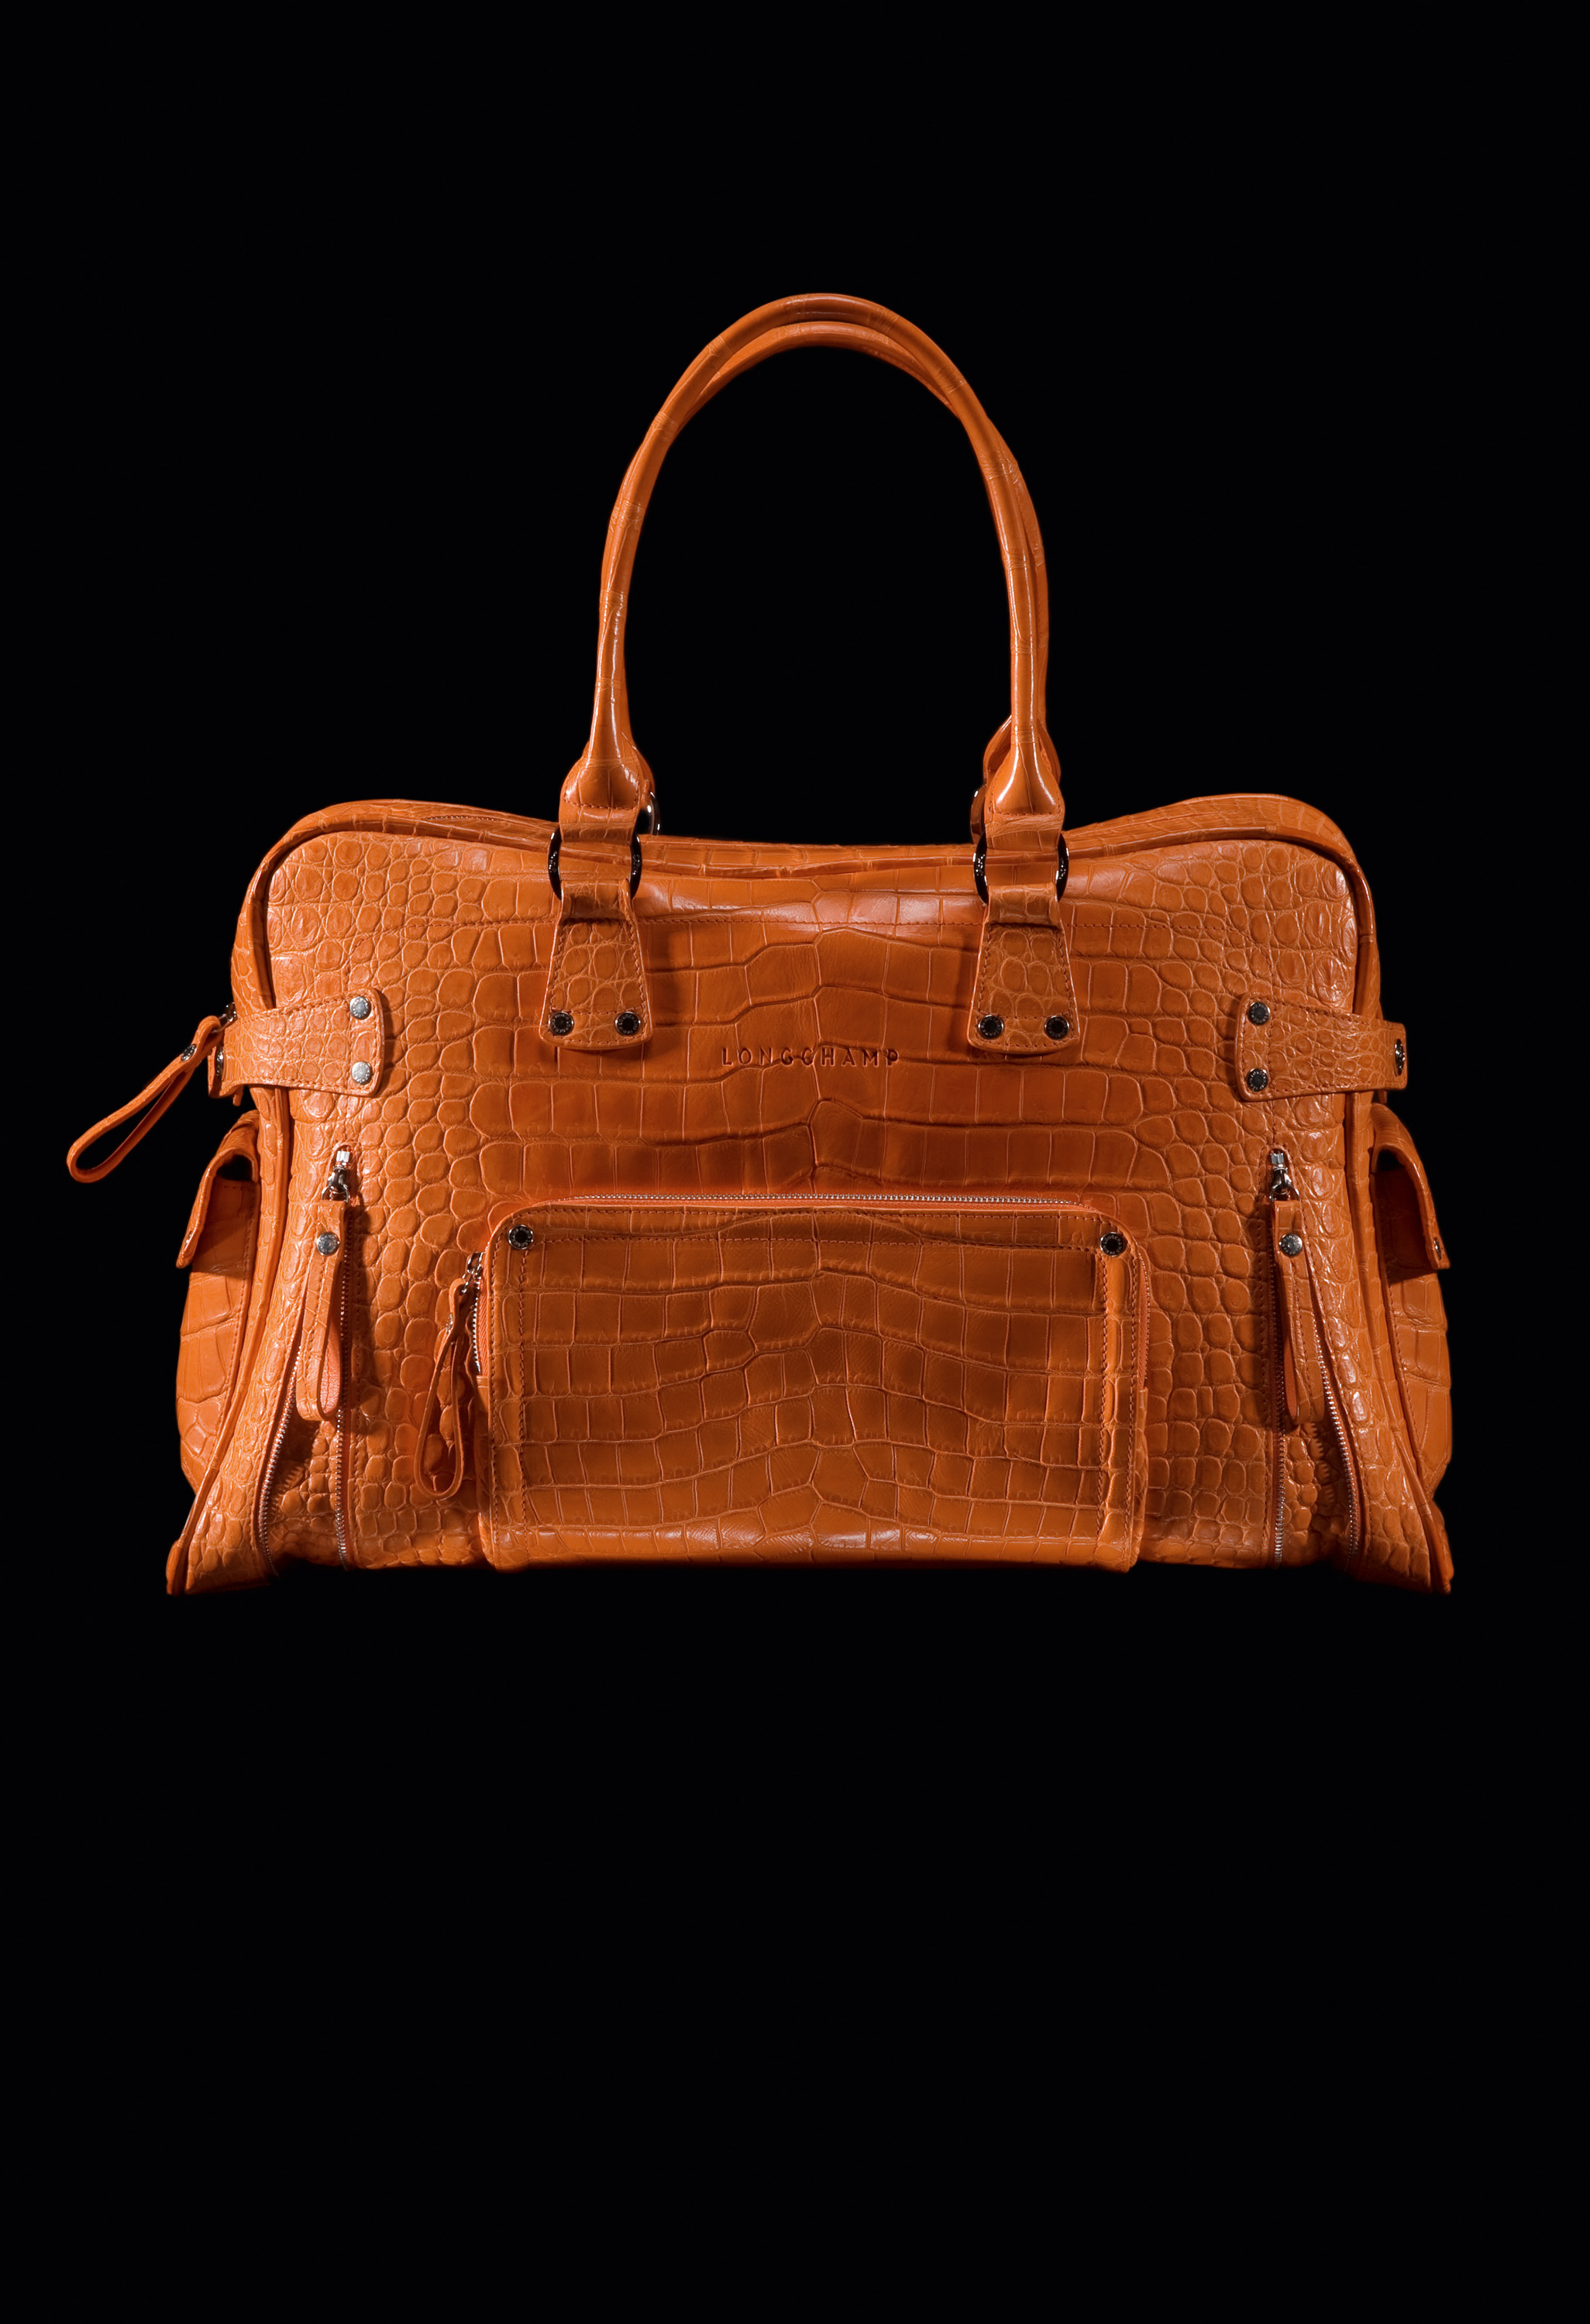 Ltd. edition Mxi-Rival crocodile bag